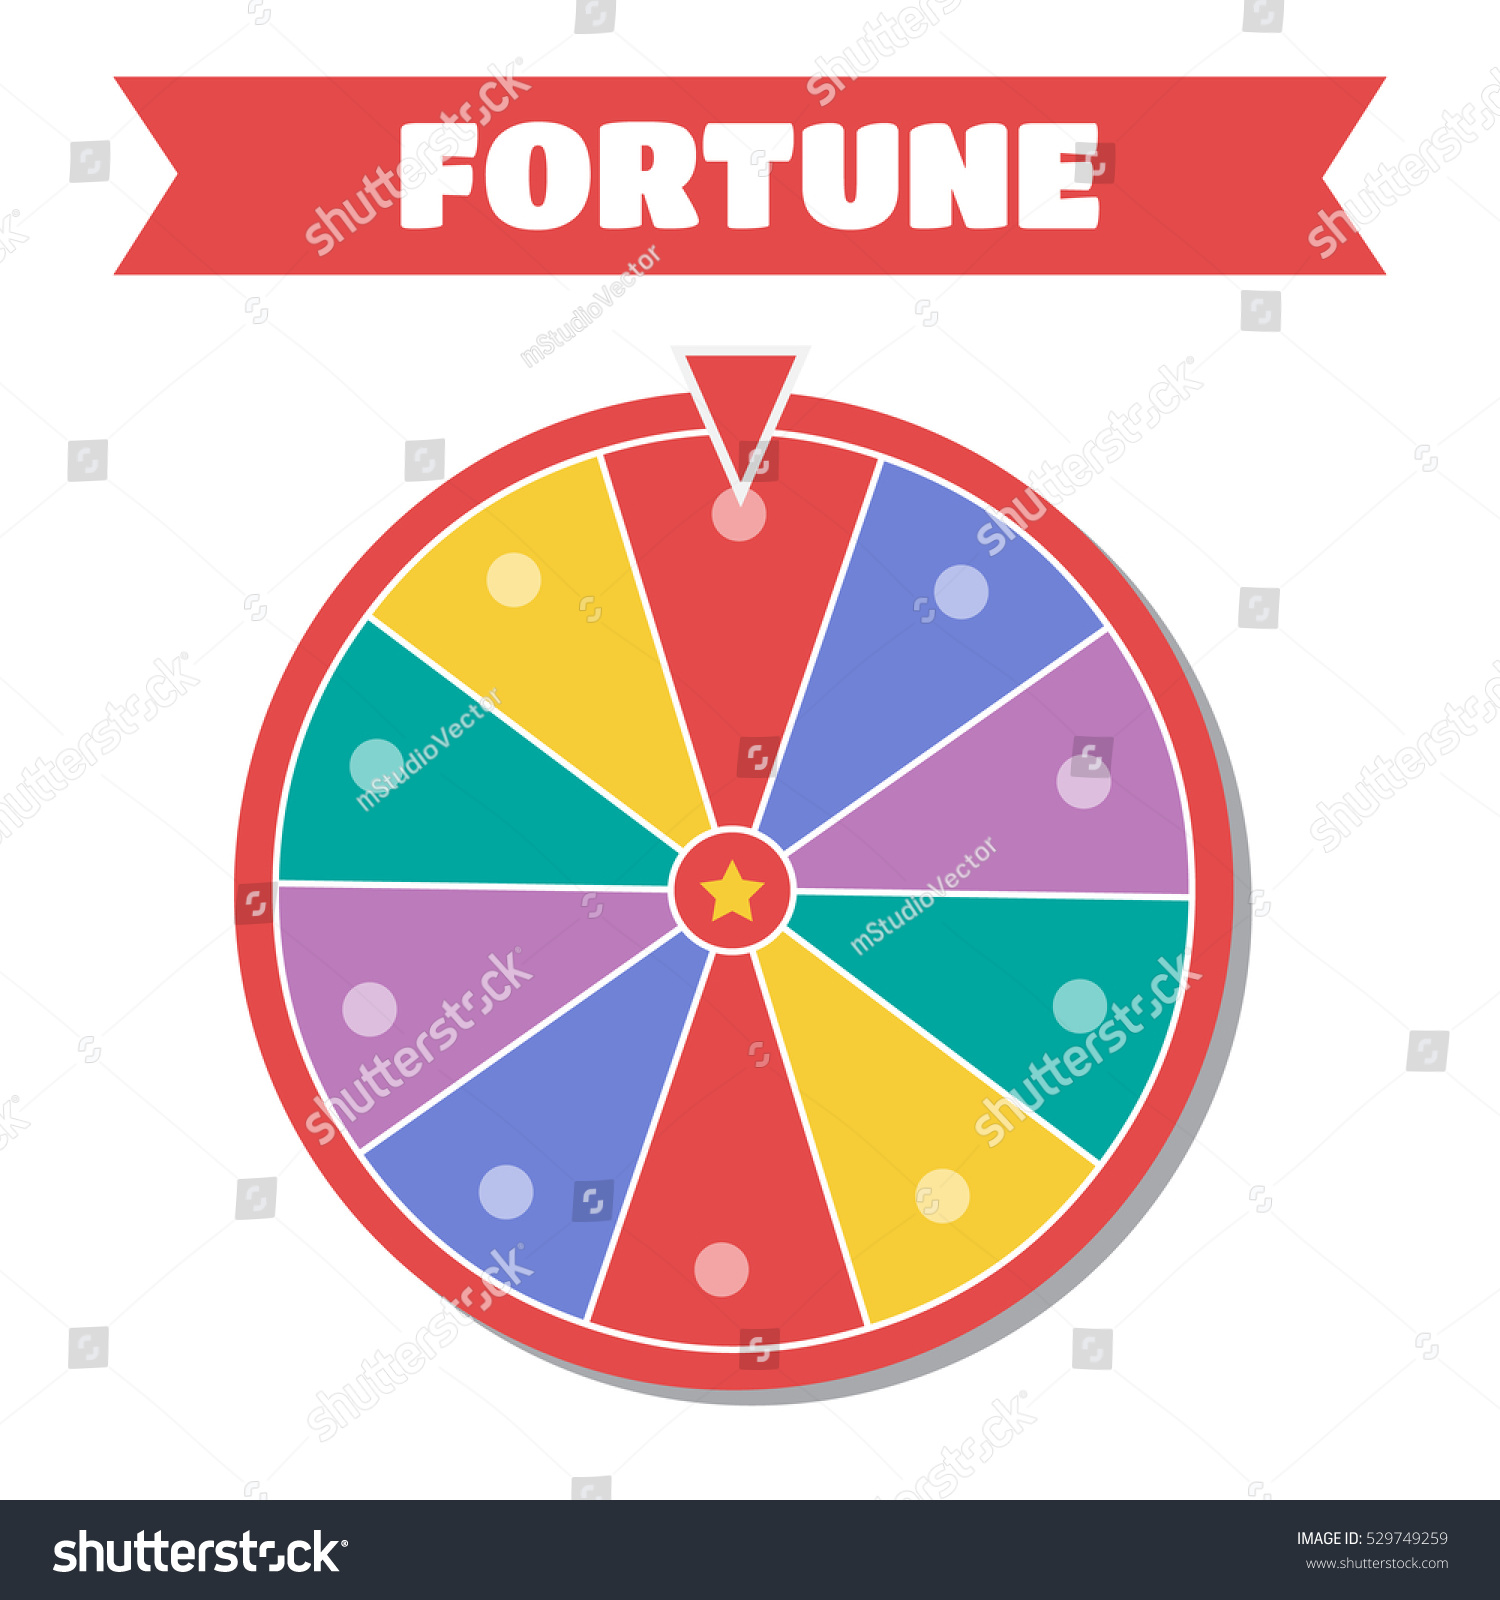 wheel fortune vector illustration wheel fortune stock vector 529749259 shutterstock. Black Bedroom Furniture Sets. Home Design Ideas